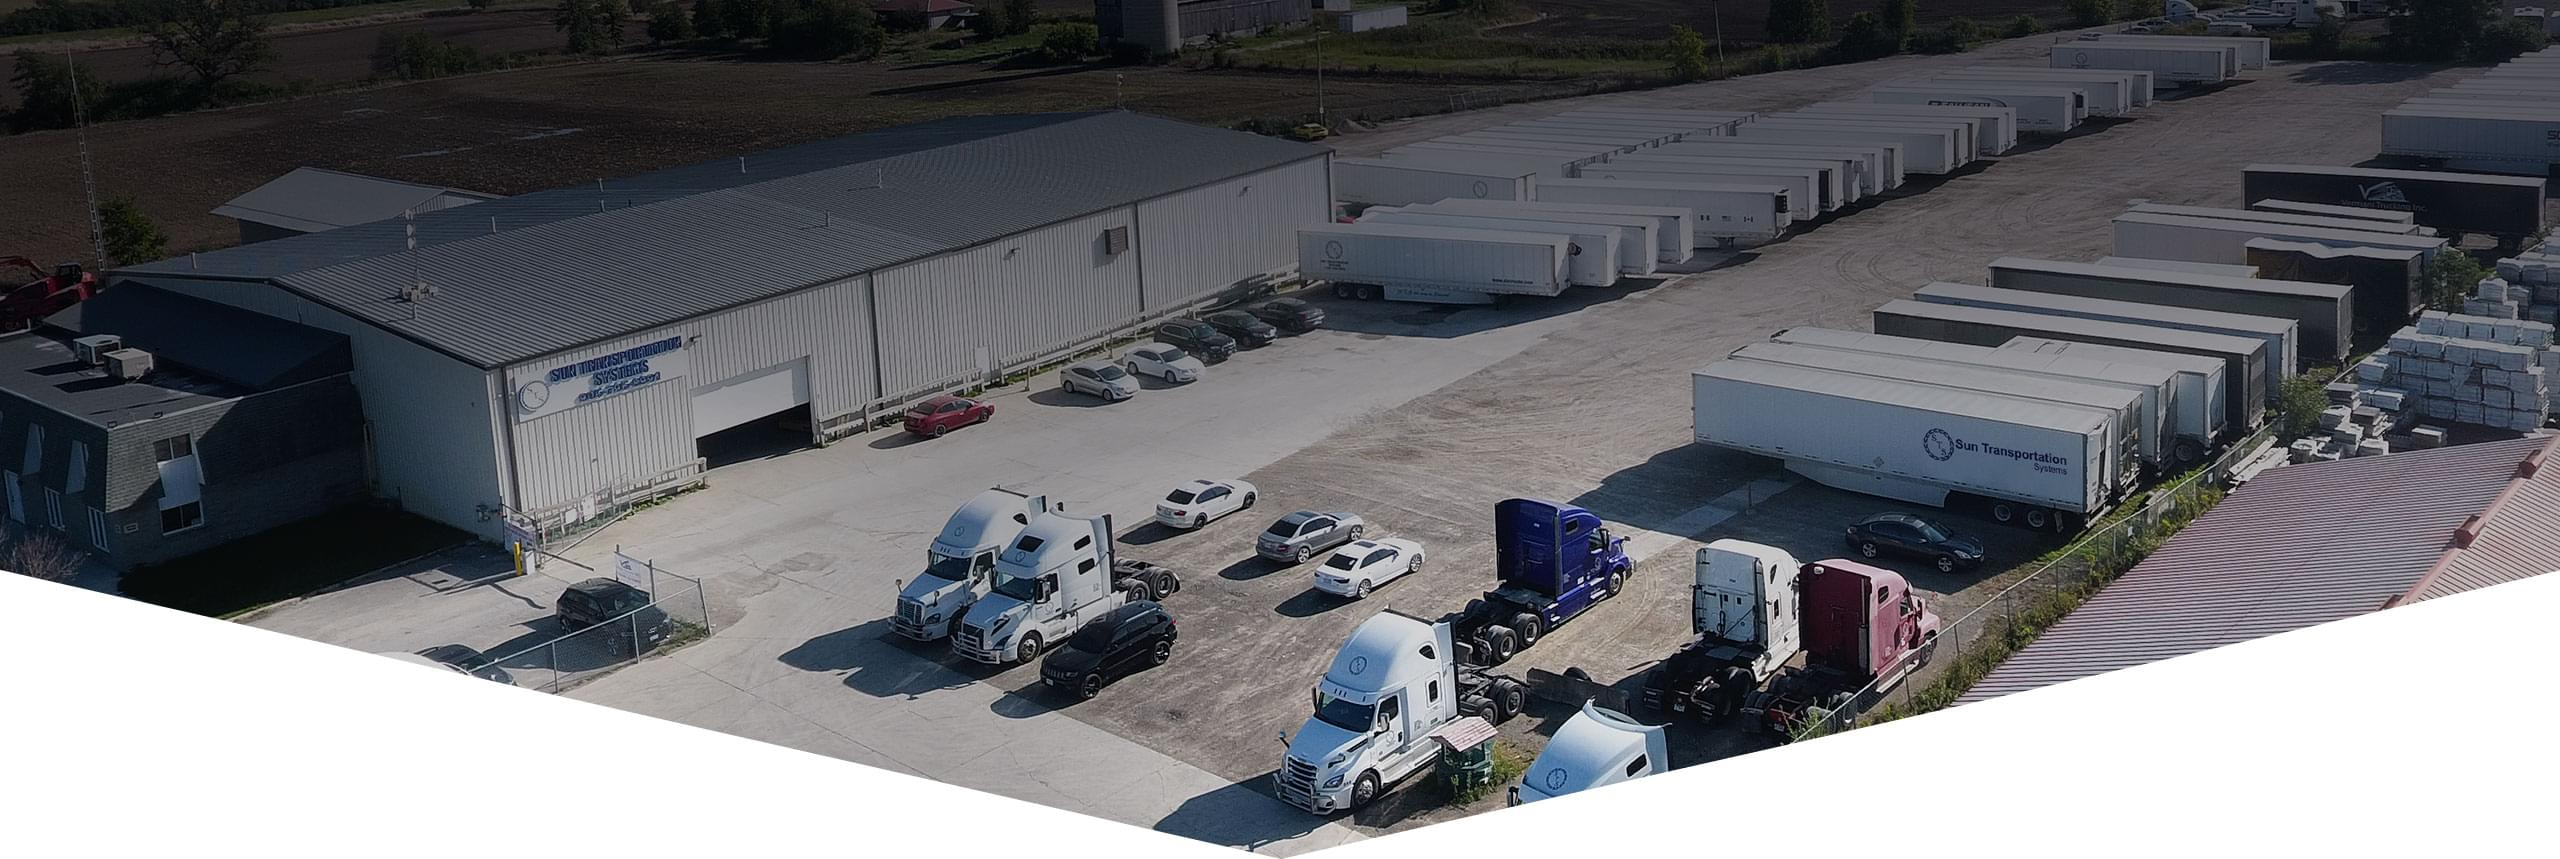 An aerial view of STS property, with building, vehicles, trucks, trailers and equipment available to lease.